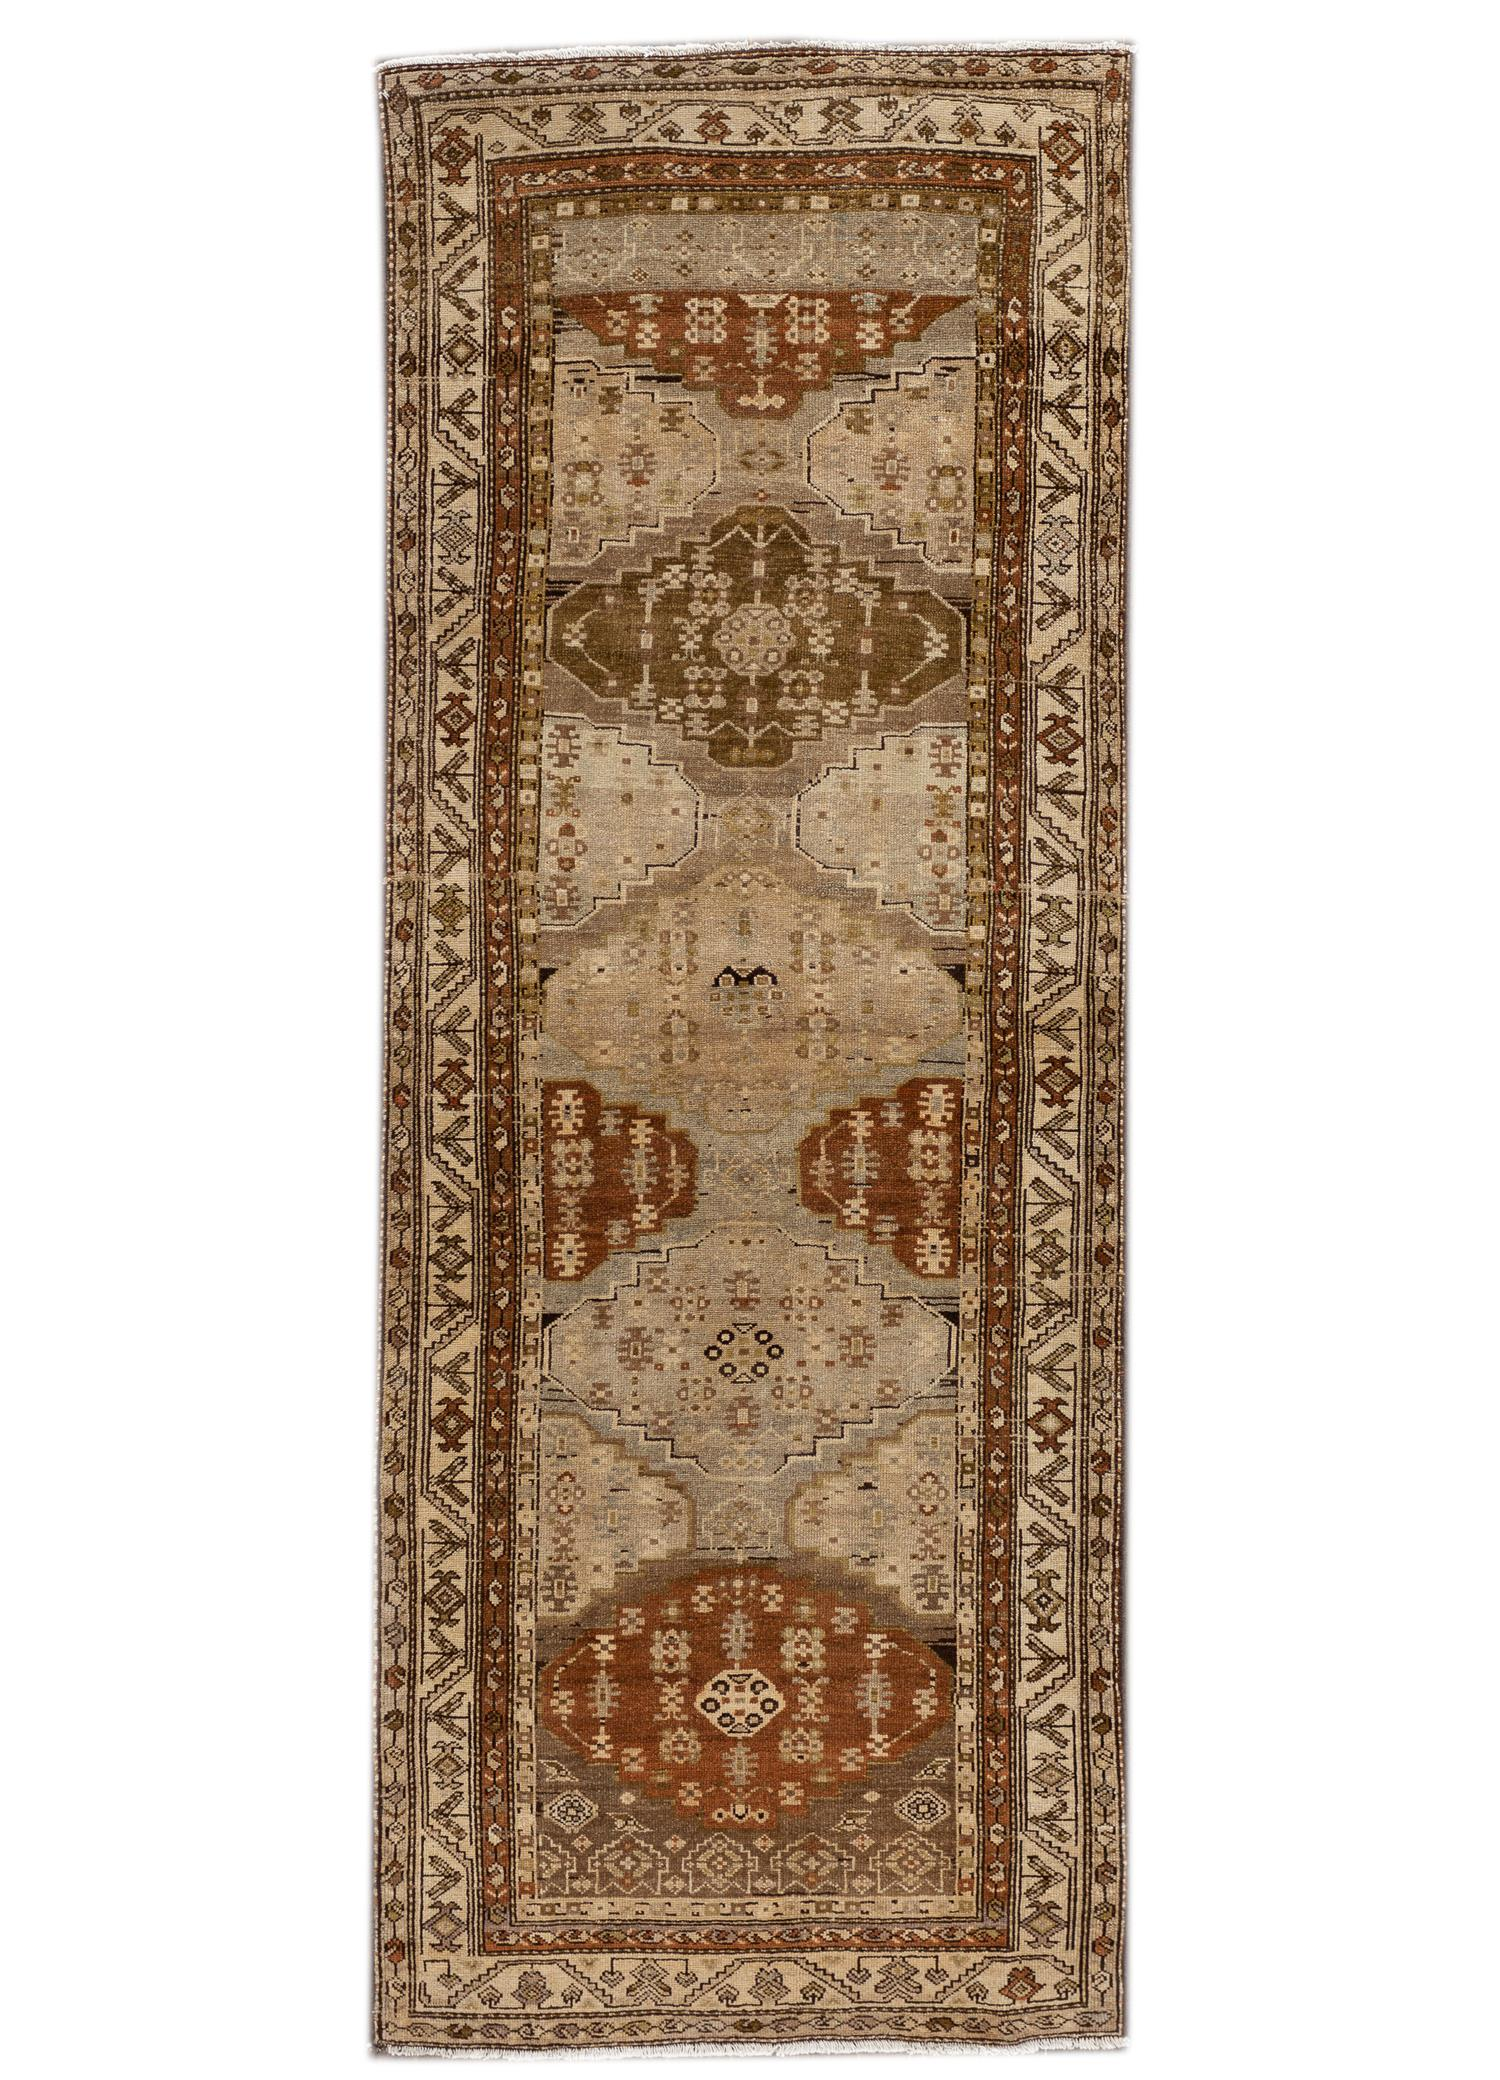 Antique Malayer Runner, 3' x 9'